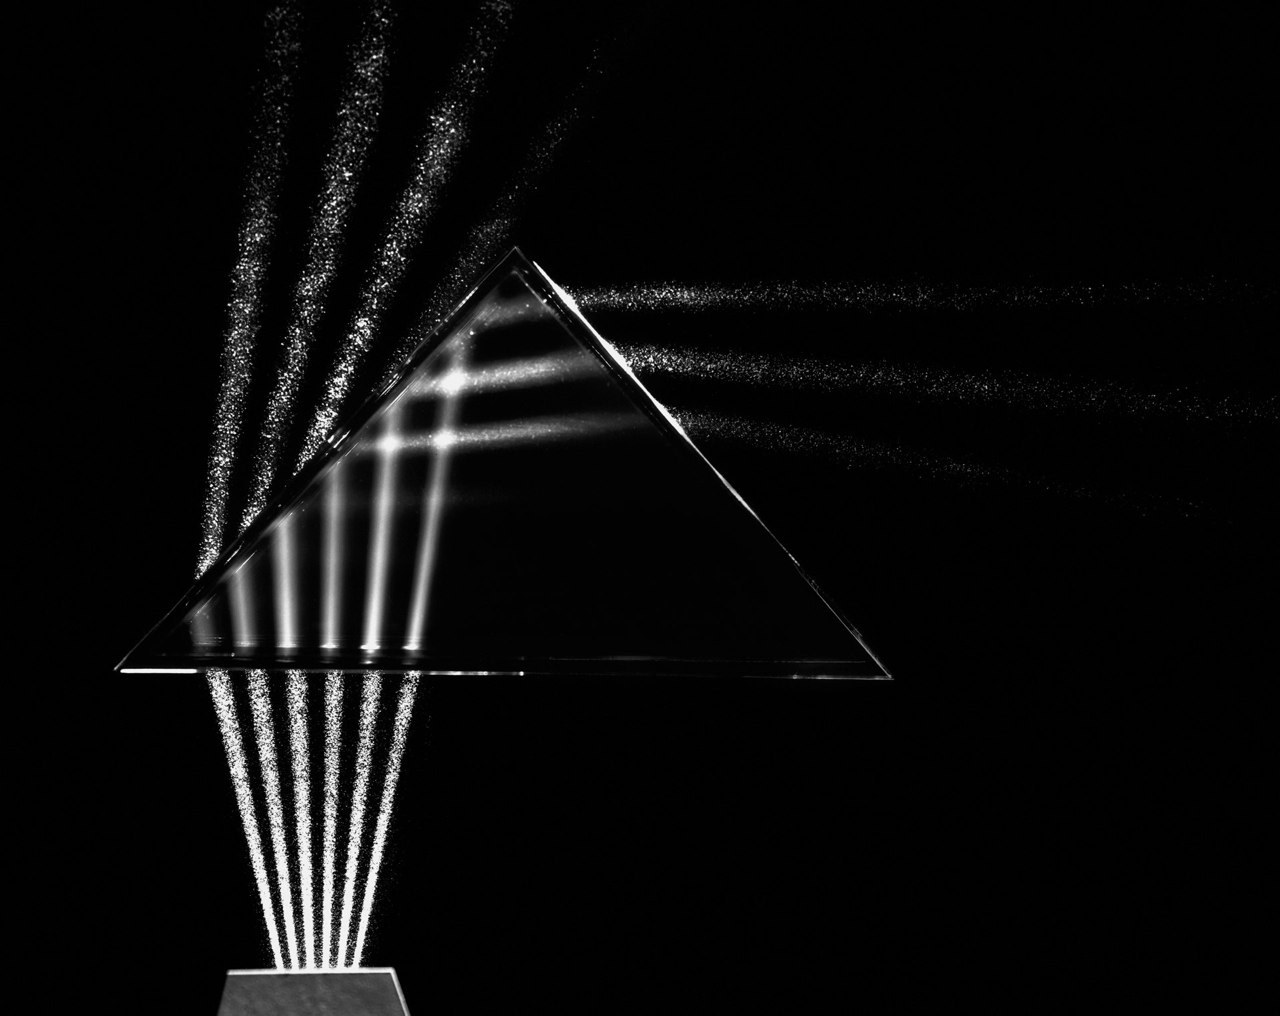 onlyoldphotography:  Berenice Abbott: Light through Prism, Cambridge, Massachusetts, 1958-61